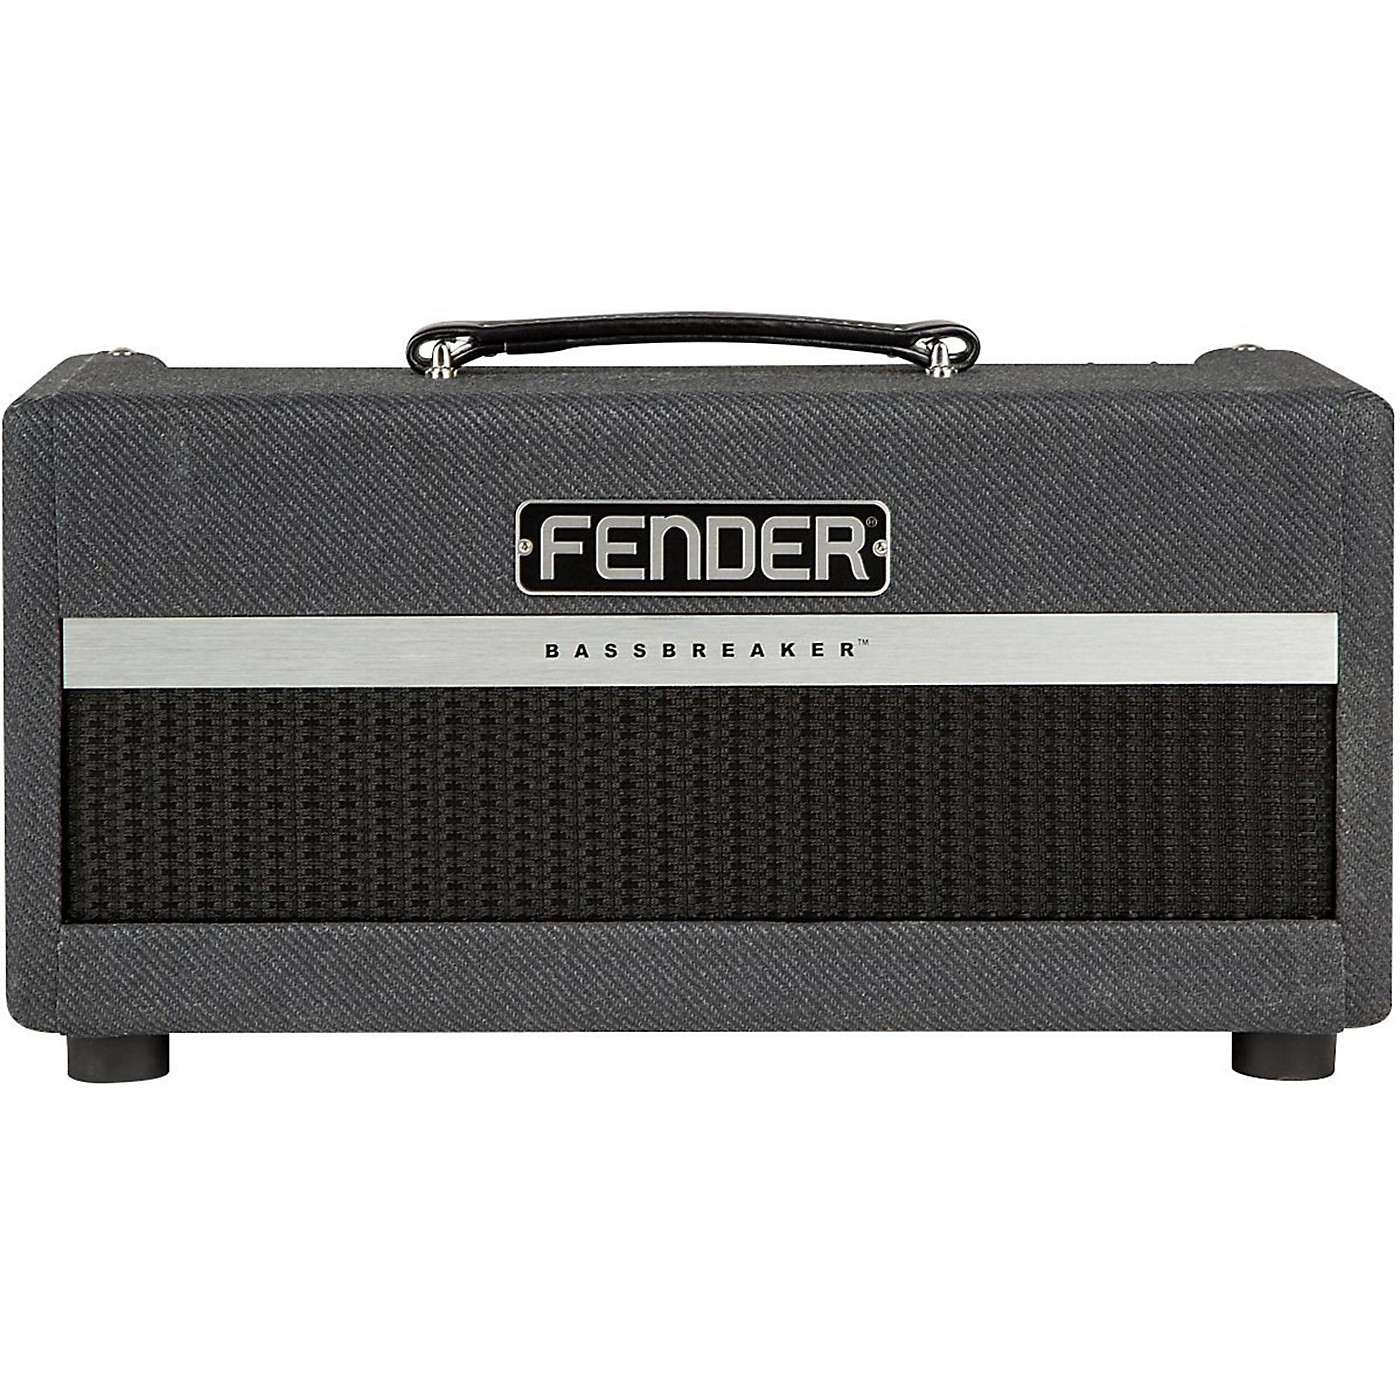 Fender Bassbreaker 15W Tube Guitar Amp Head thumbnail